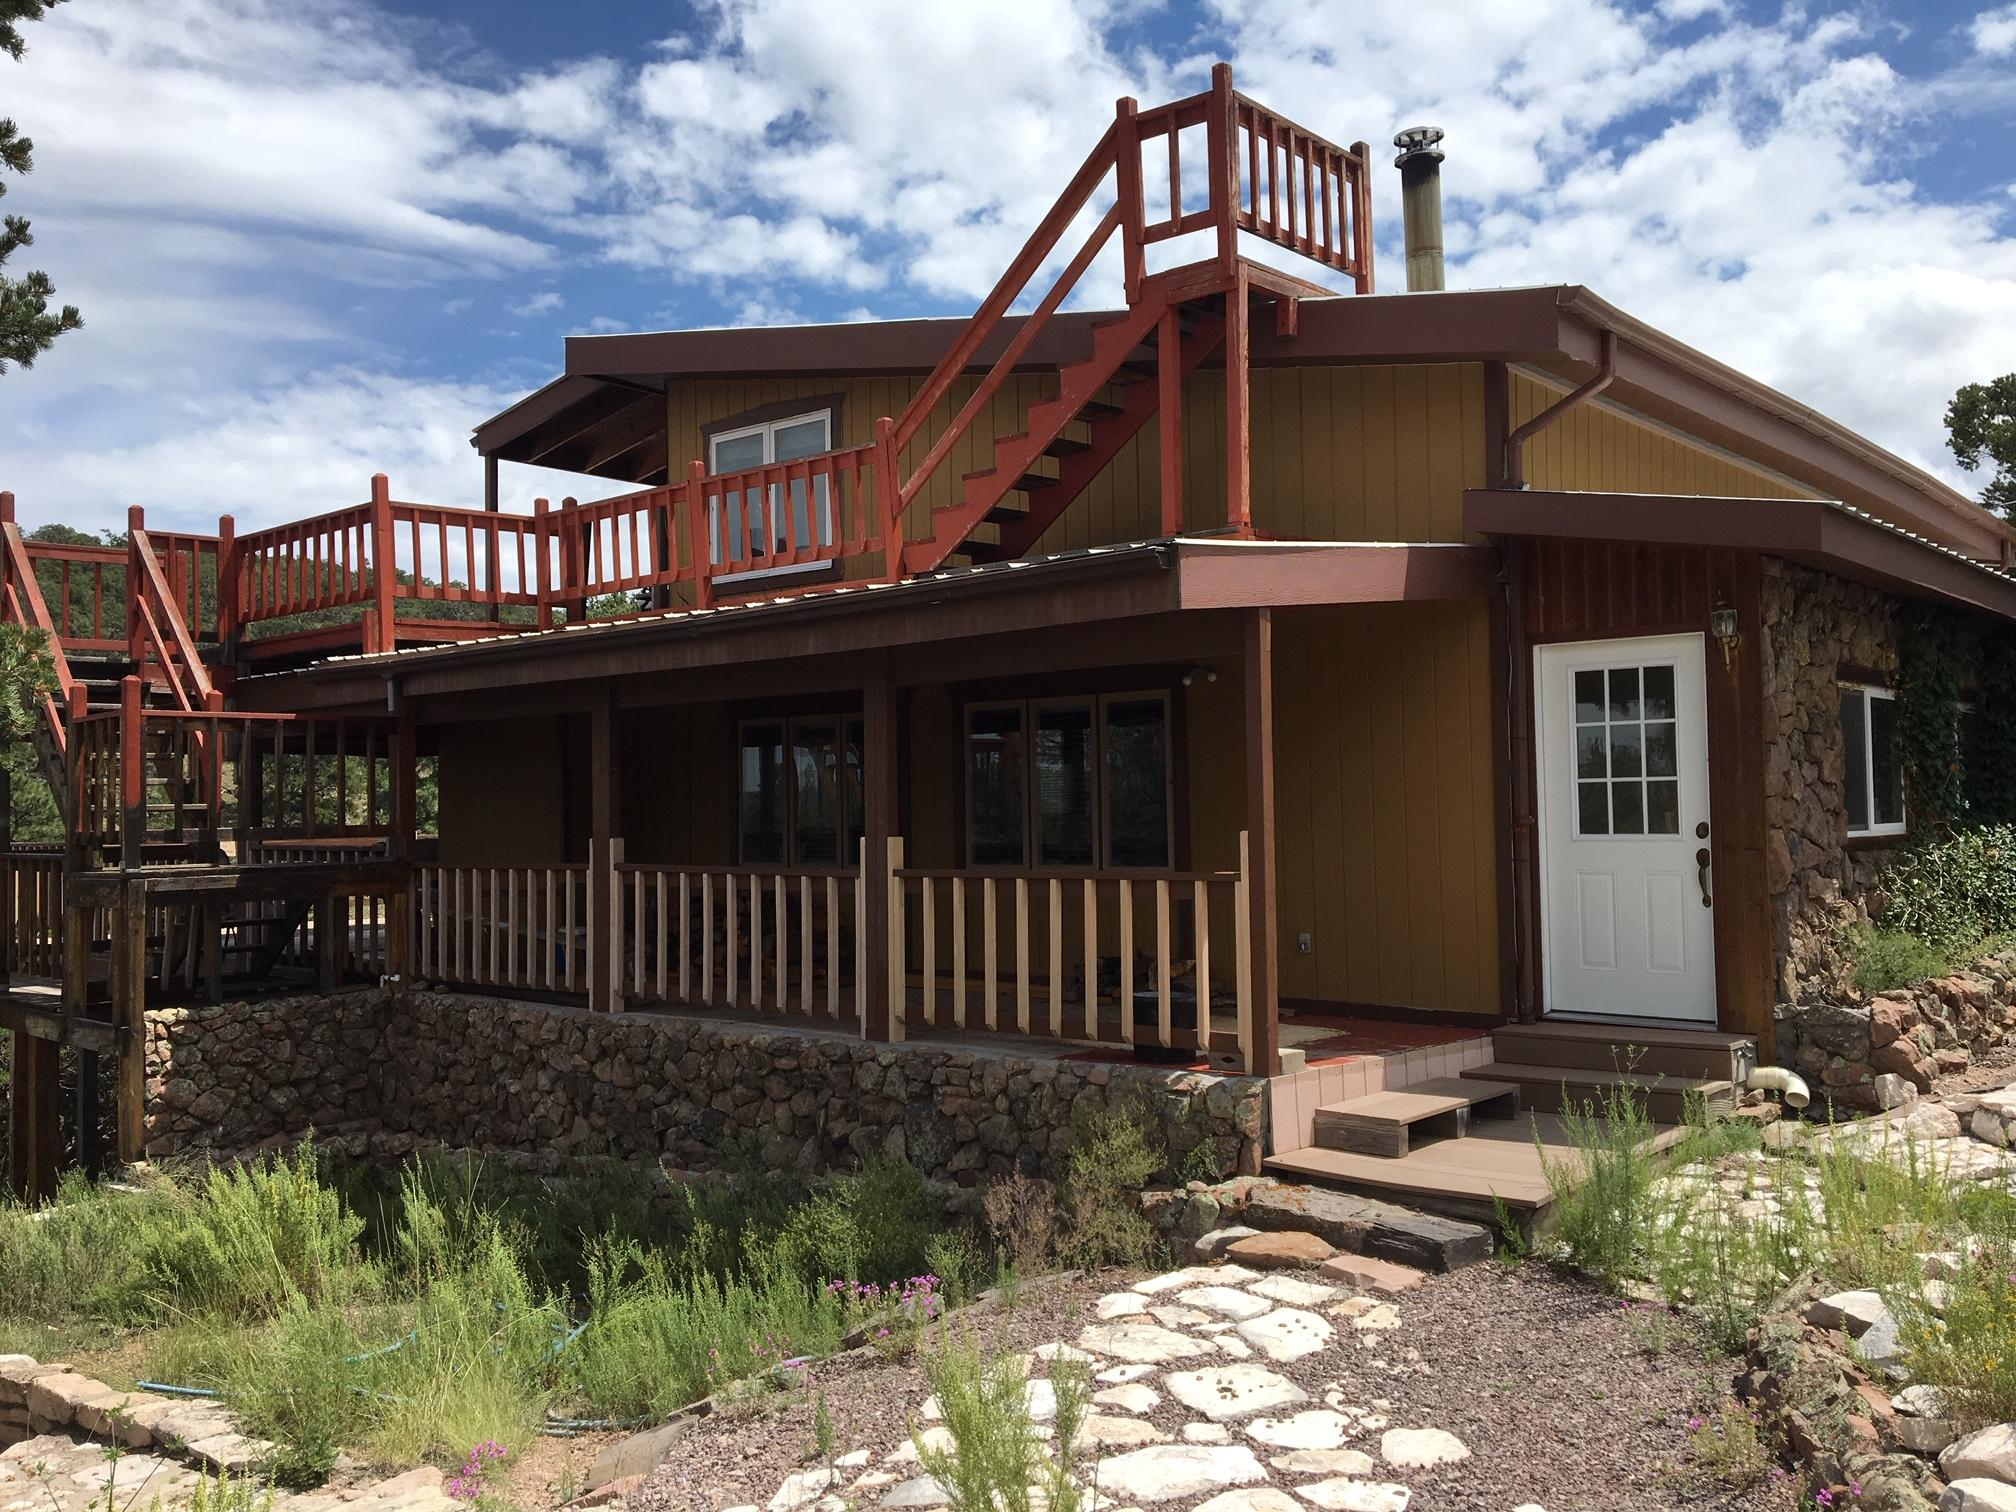 18 Wild Horse Rd in Last Frontier, Datil, NM 87821 - Datil, NM real estate listing